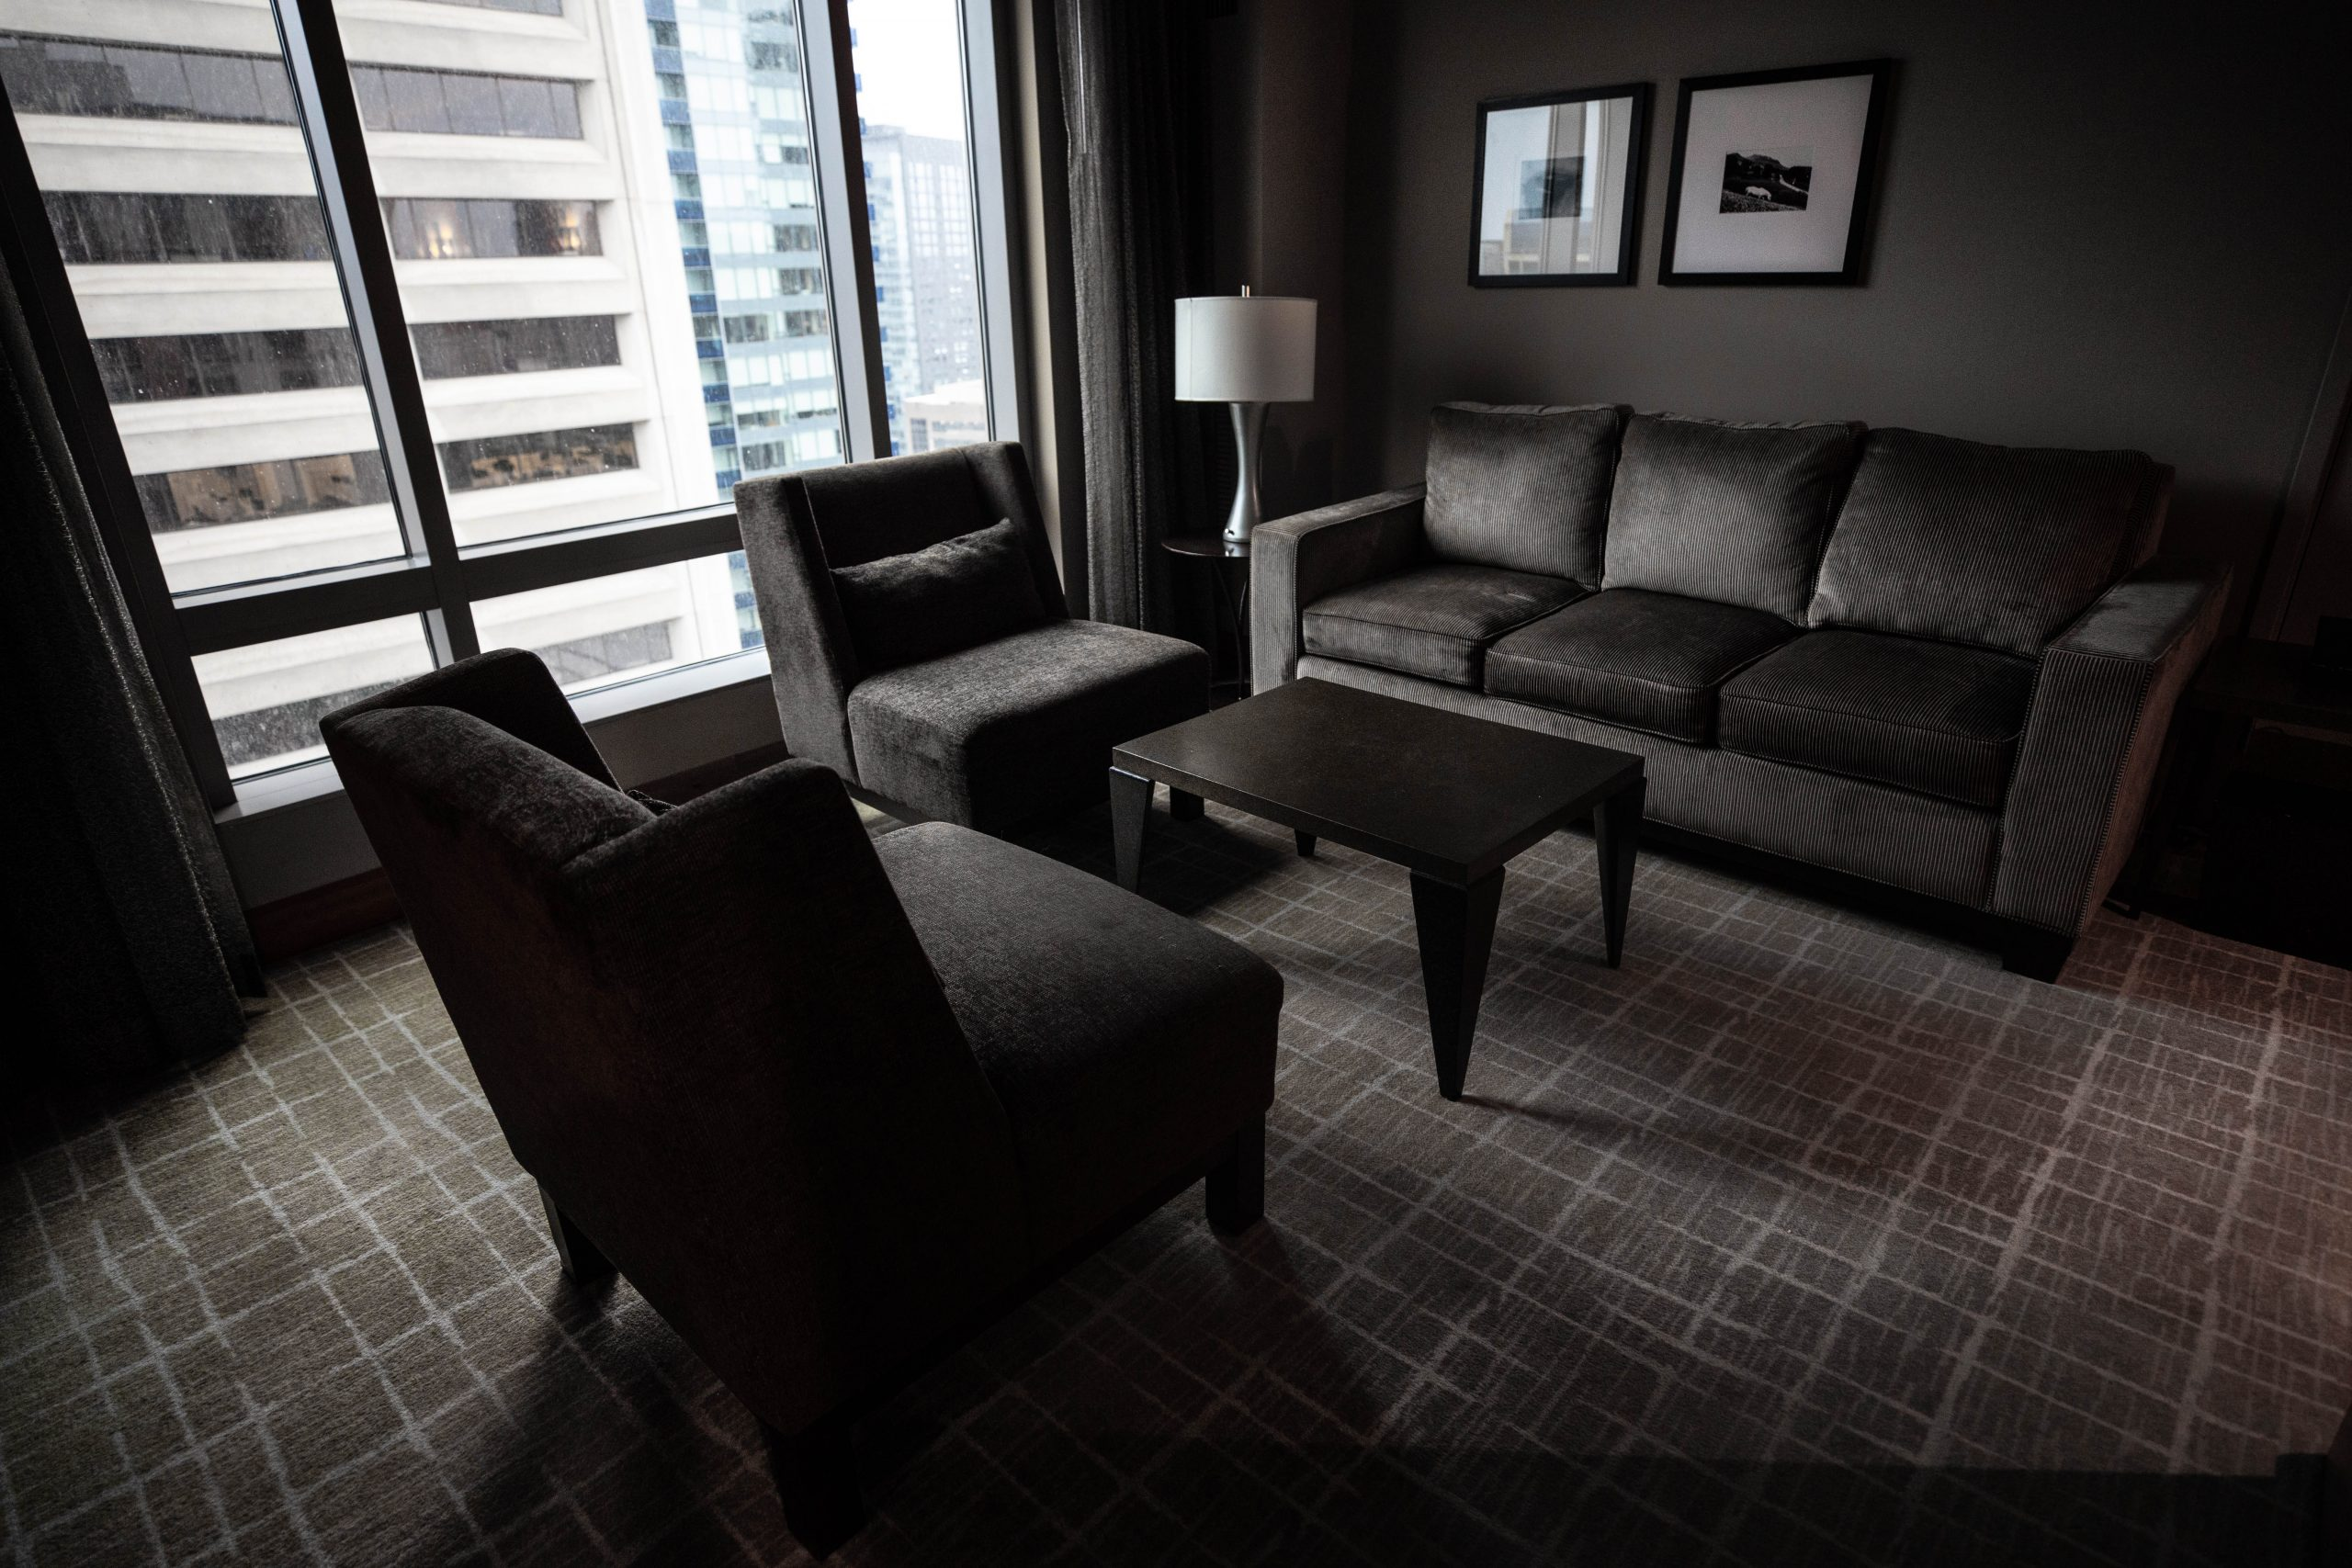 Emerald Suite Grand Hyatt Seattle Washington by Annie Fairfax